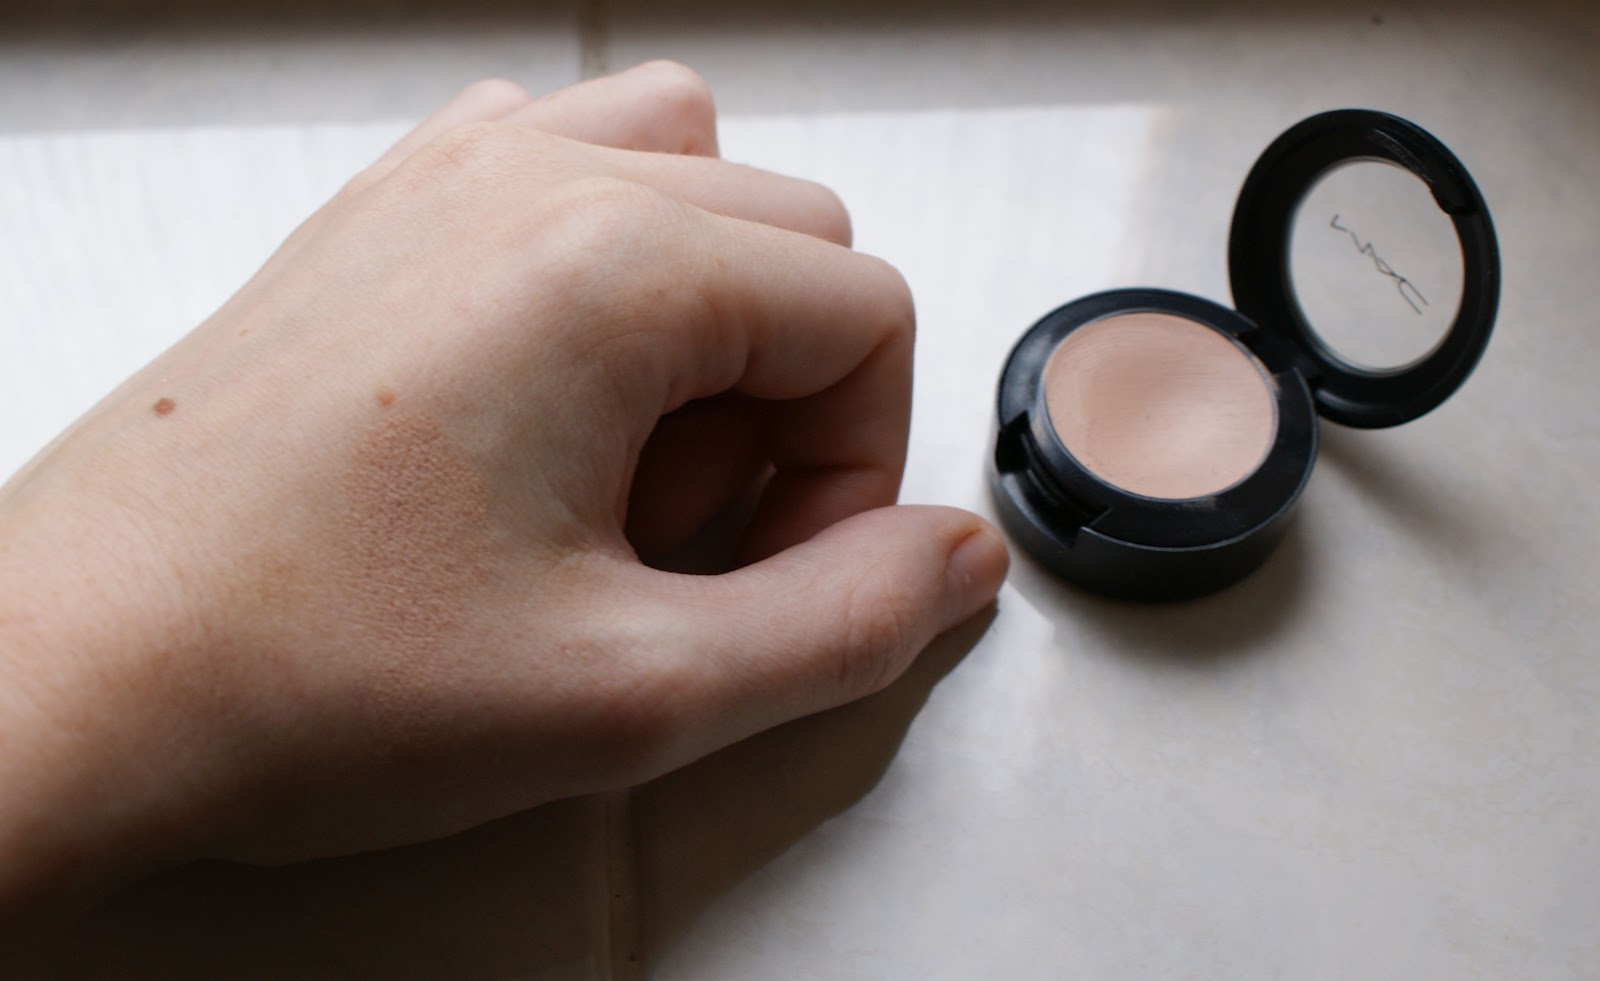 Studio Finish Concealer Duo by MAC #13